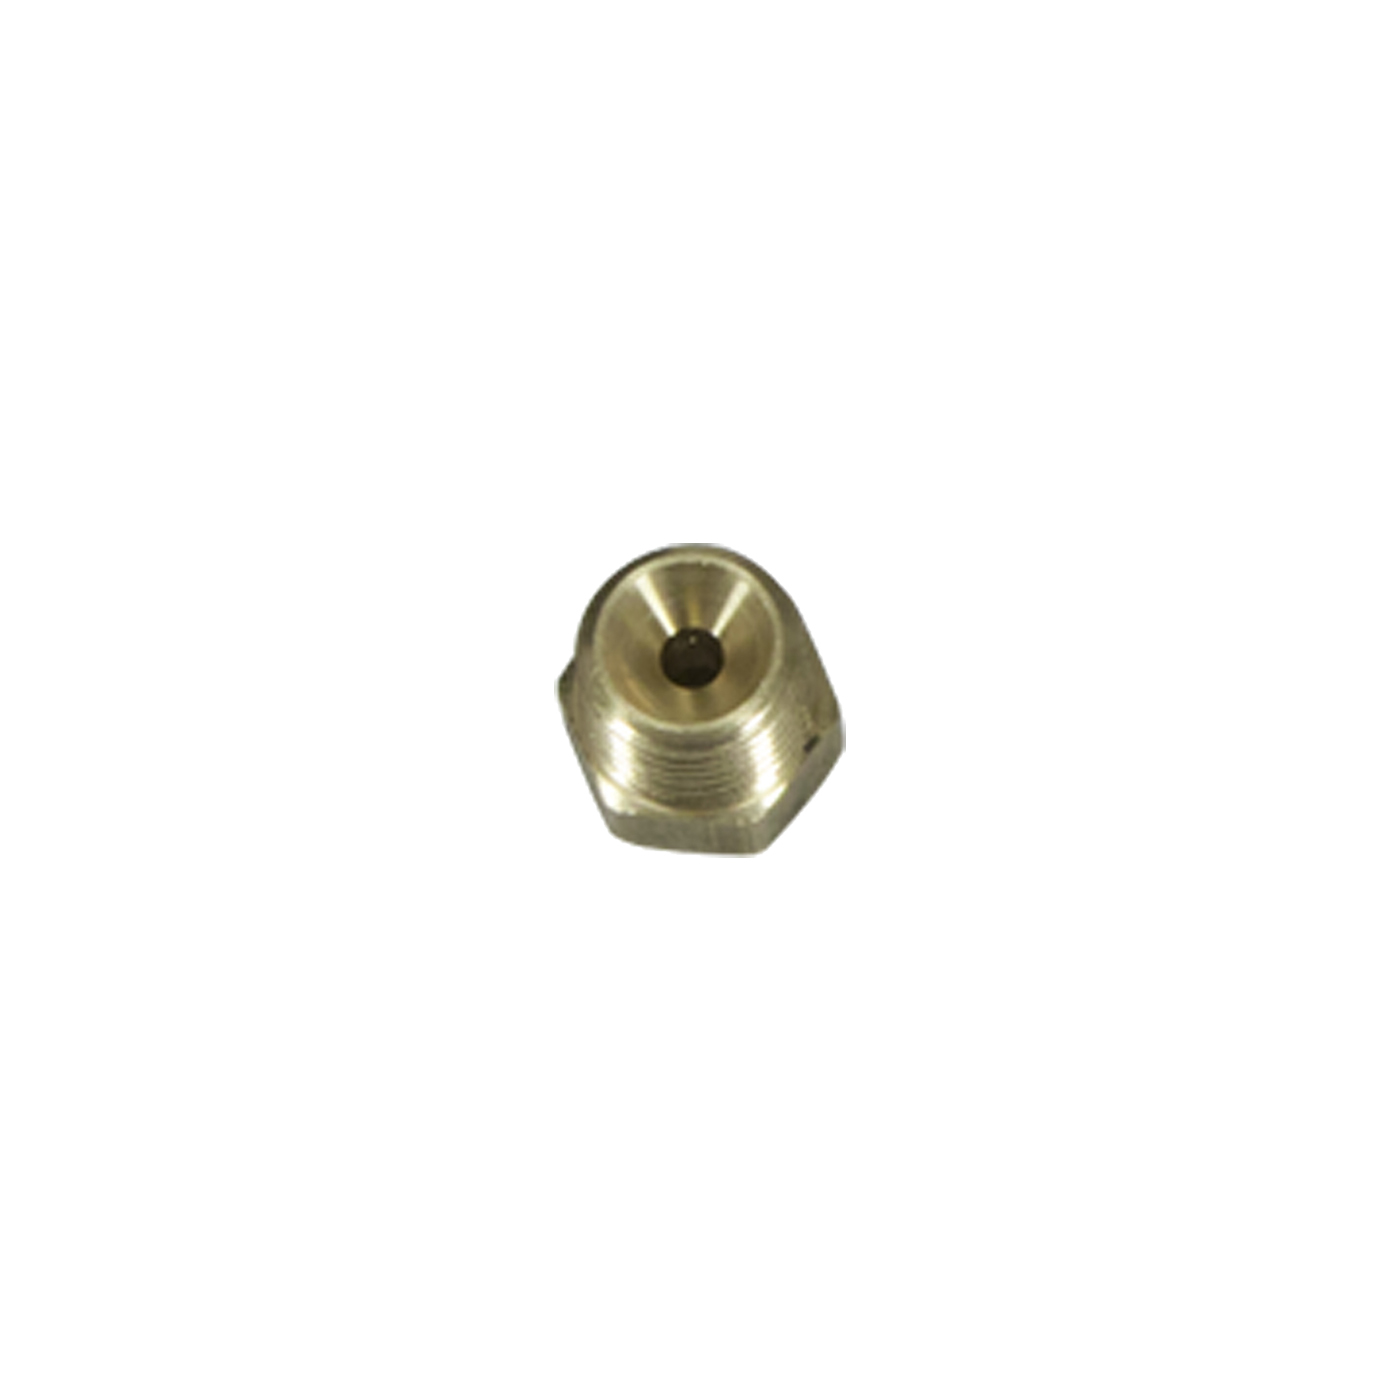 YZLABH-01 - Yukon Zip Locker Bulkhead fitting